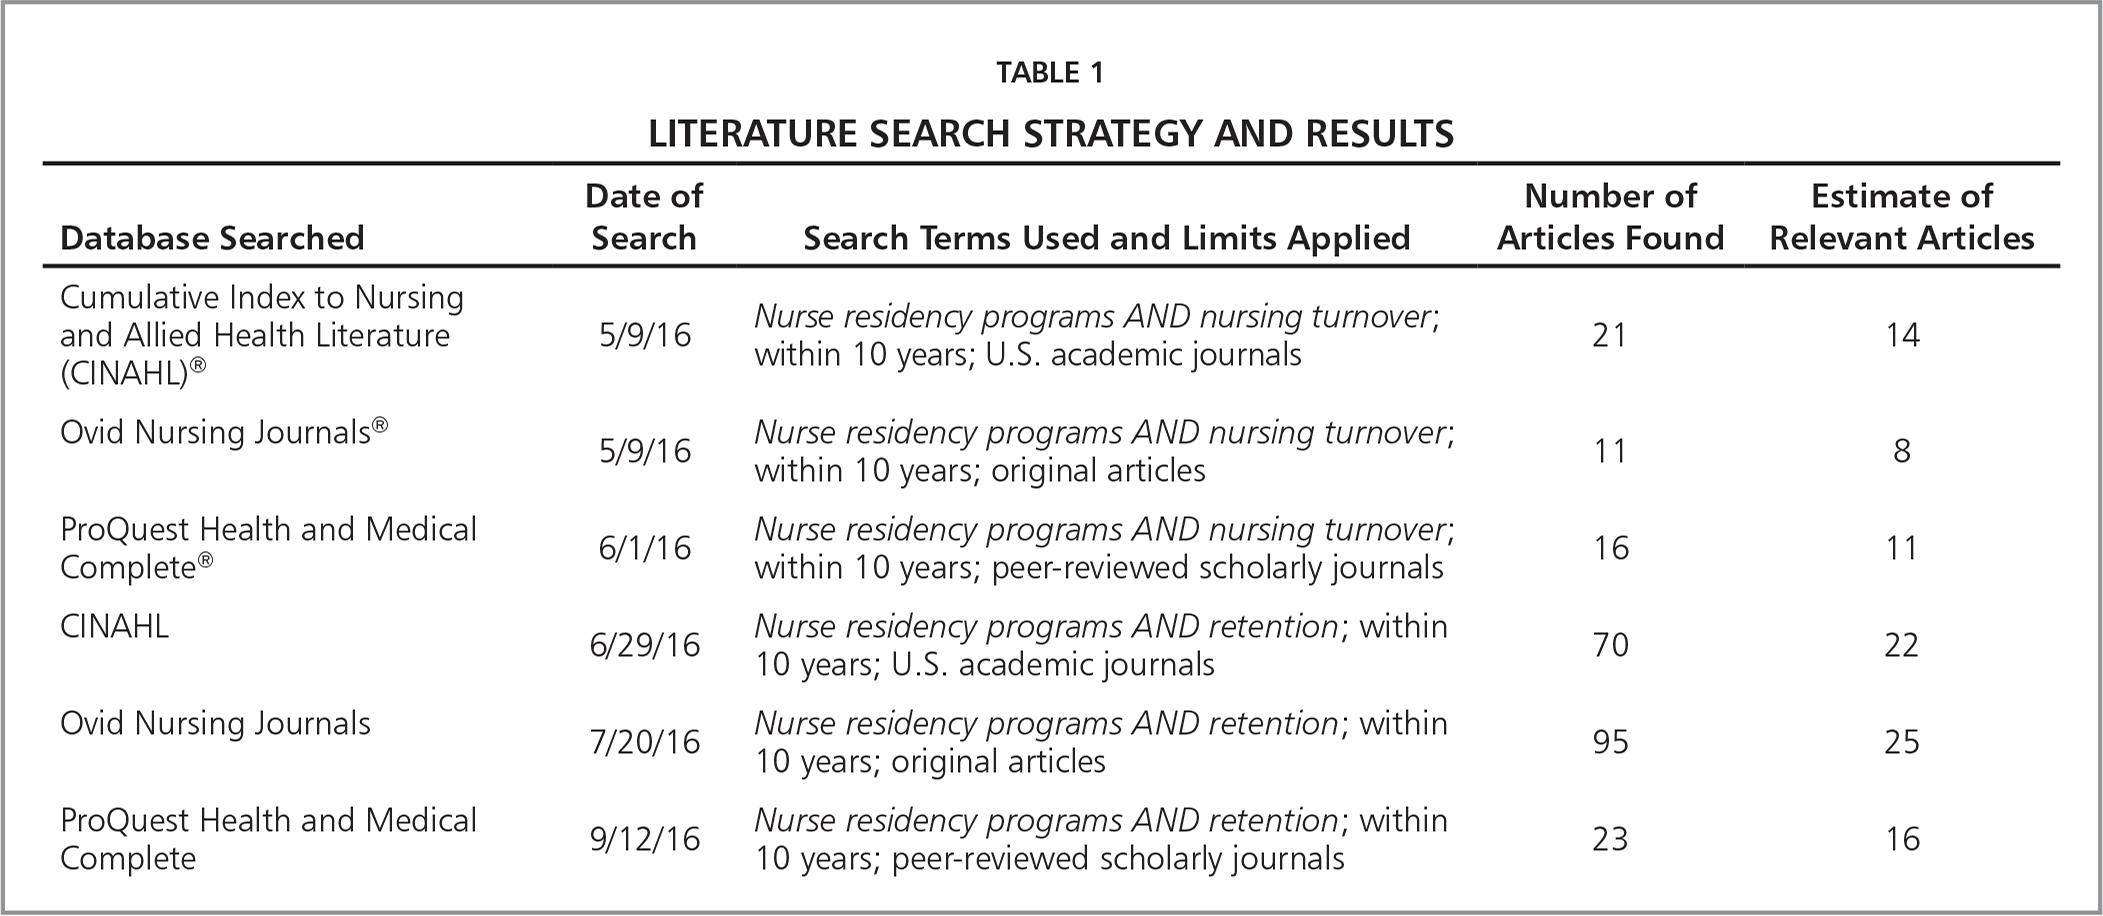 Literature Search Strategy and Results